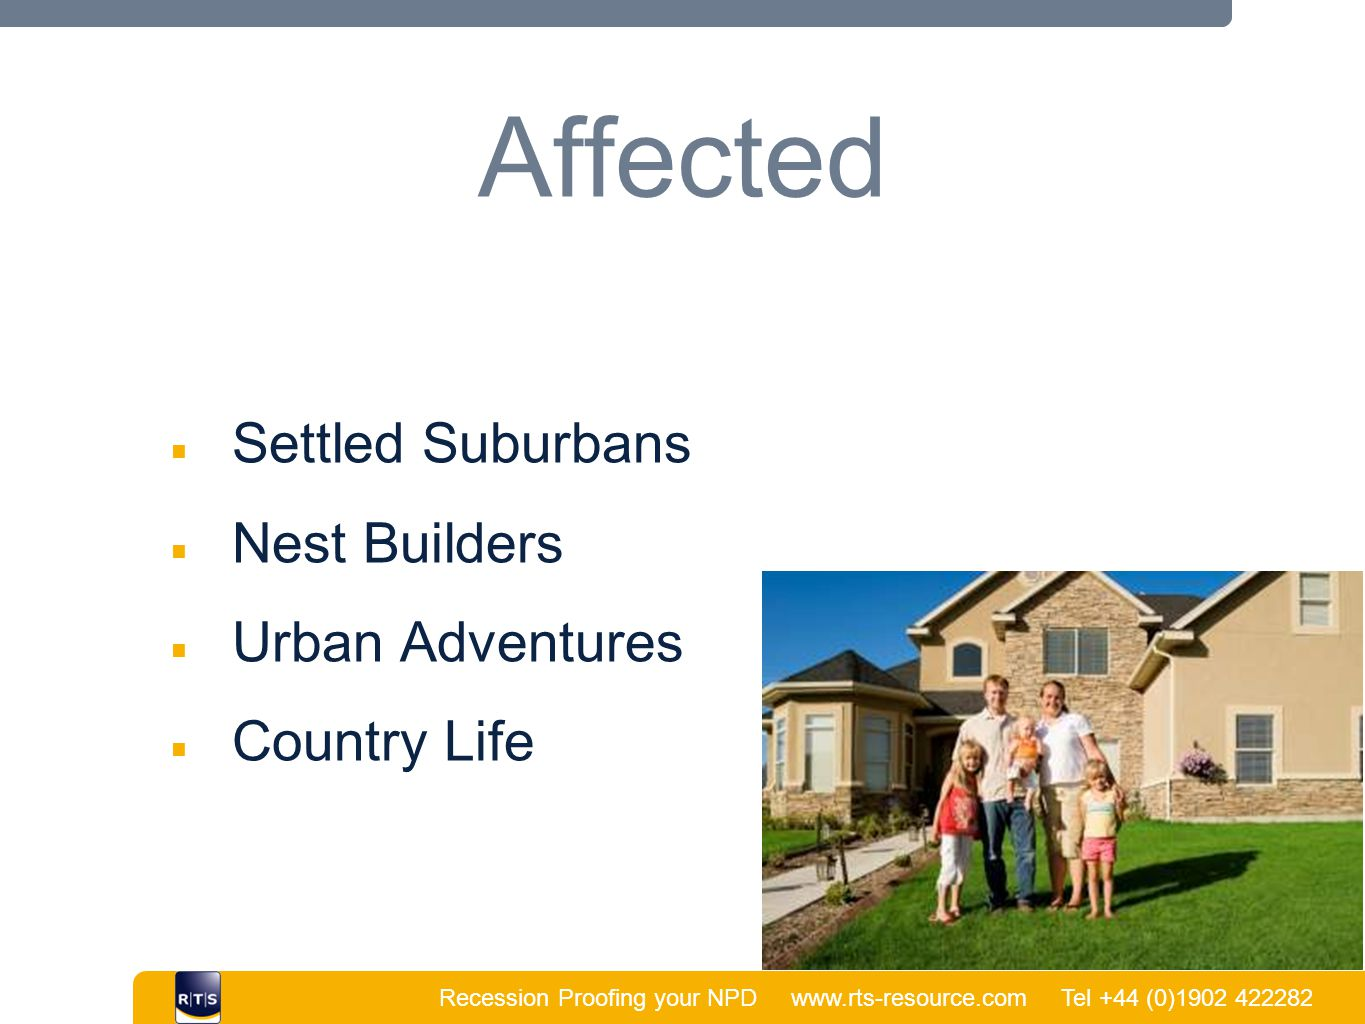 Recession Proofing your NPD www.rts-resource.com Tel +44 (0)1902 422282 | Affected ■ Settled Suburbans ■ Nest Builders ■ Urban Adventures ■ Country Li